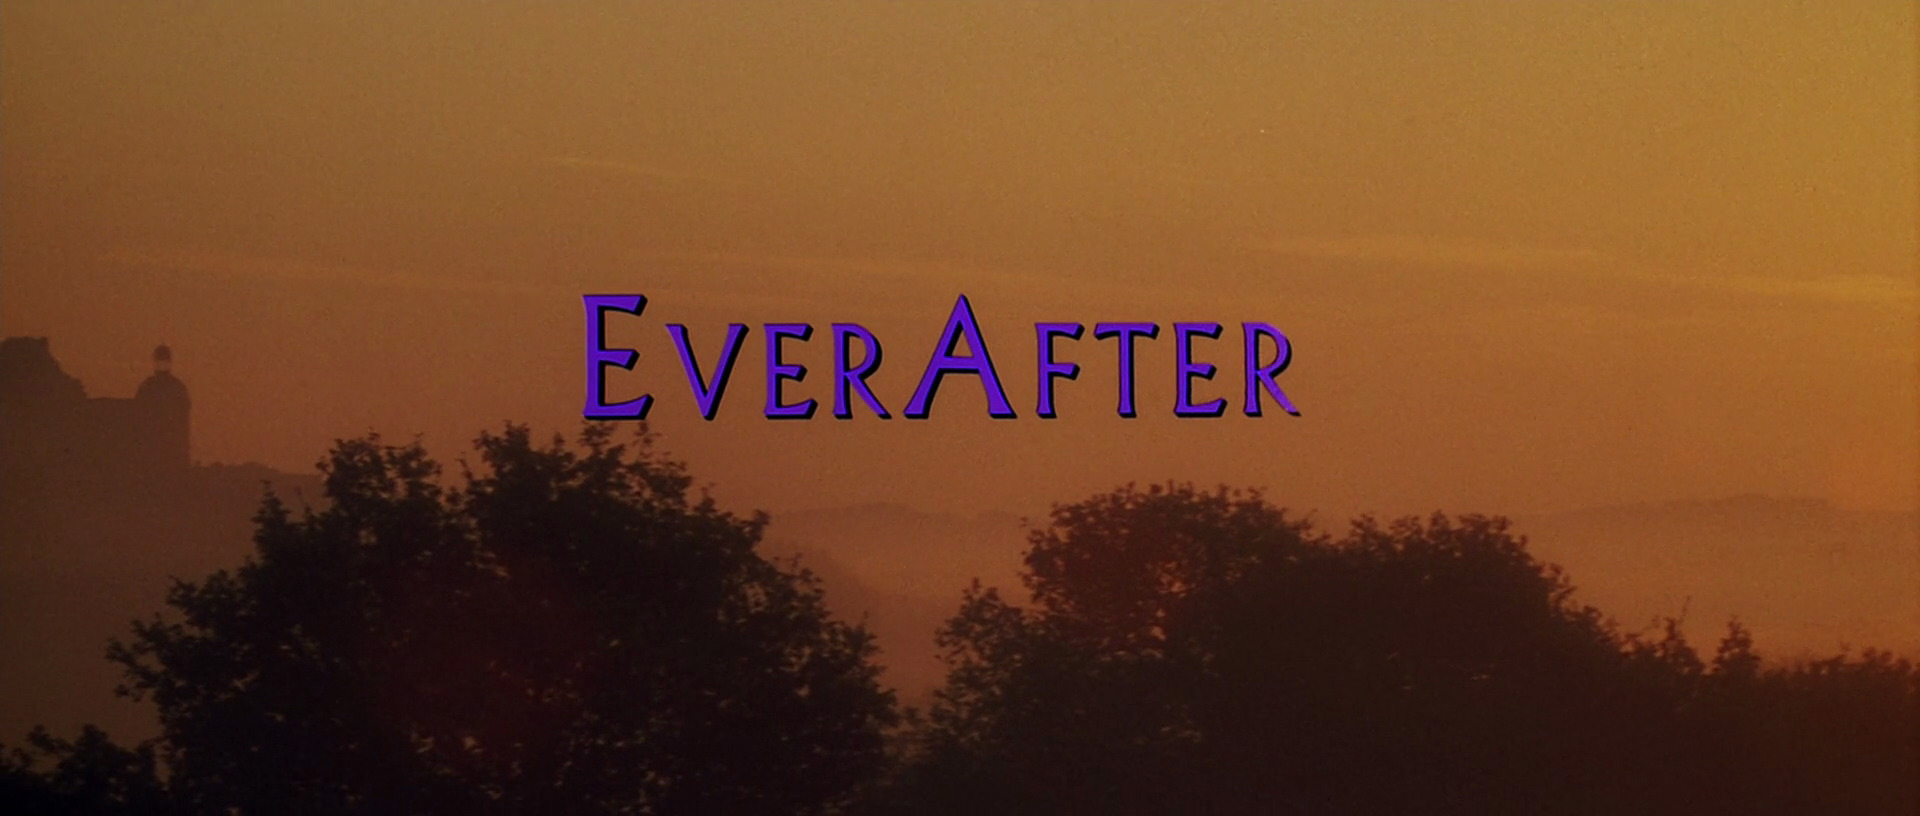 ever after a cinderella story full movie download in hindi